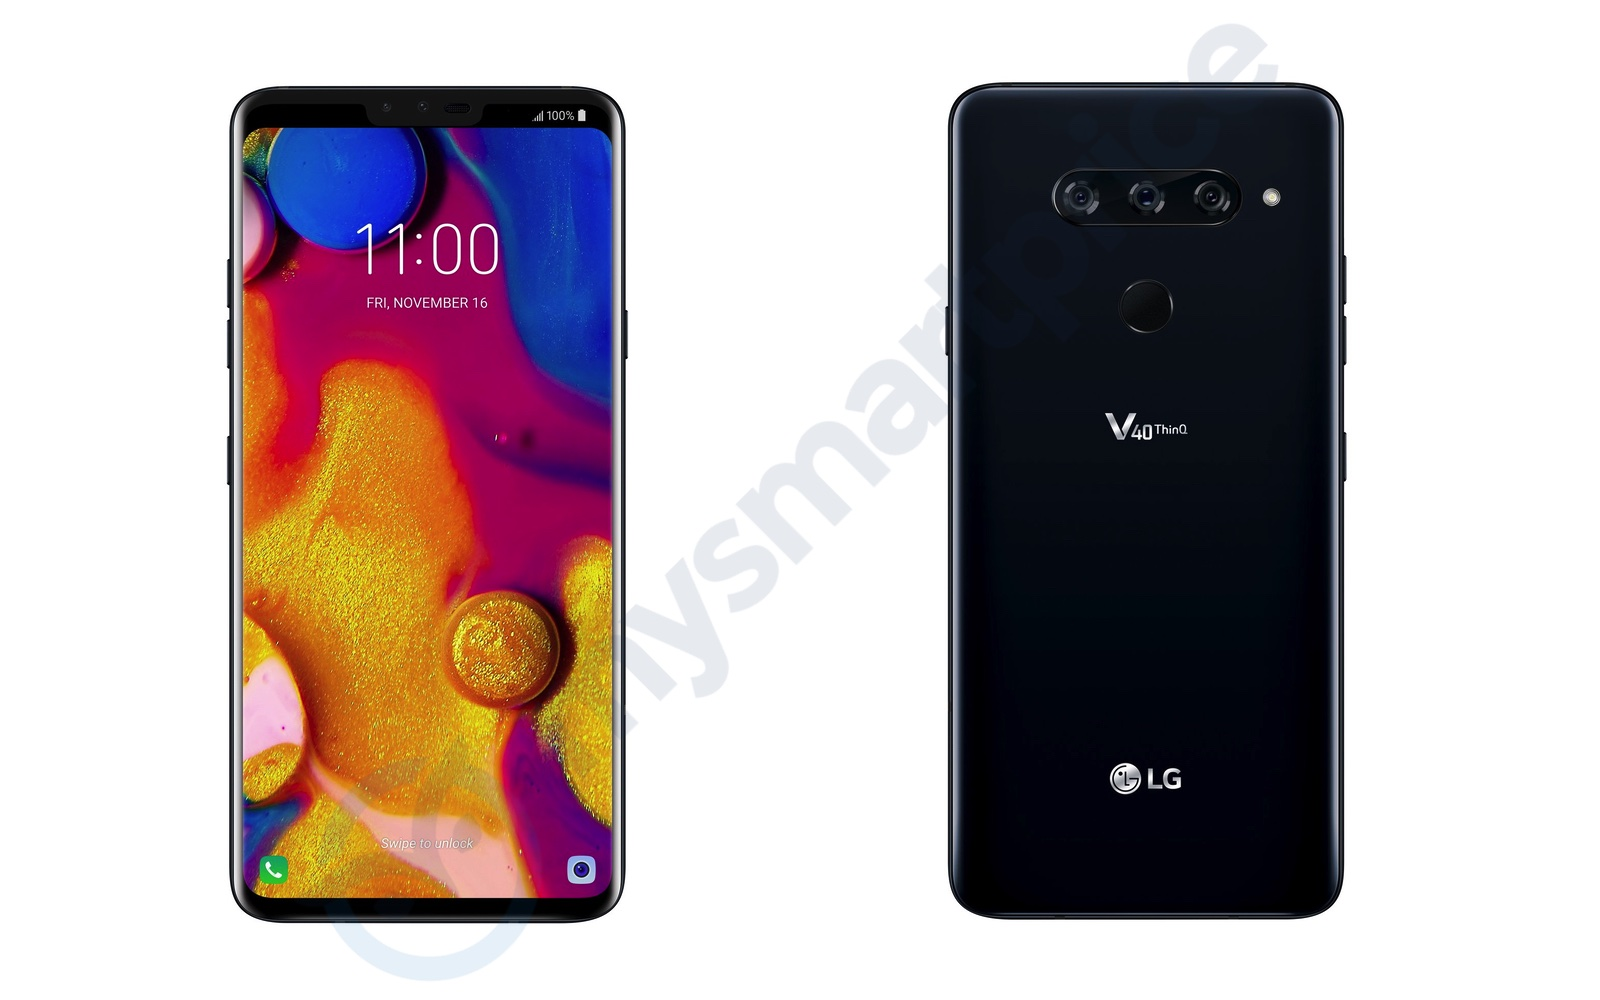 LG V40 ThinQ officially announced, but specs are yet to be confirmed